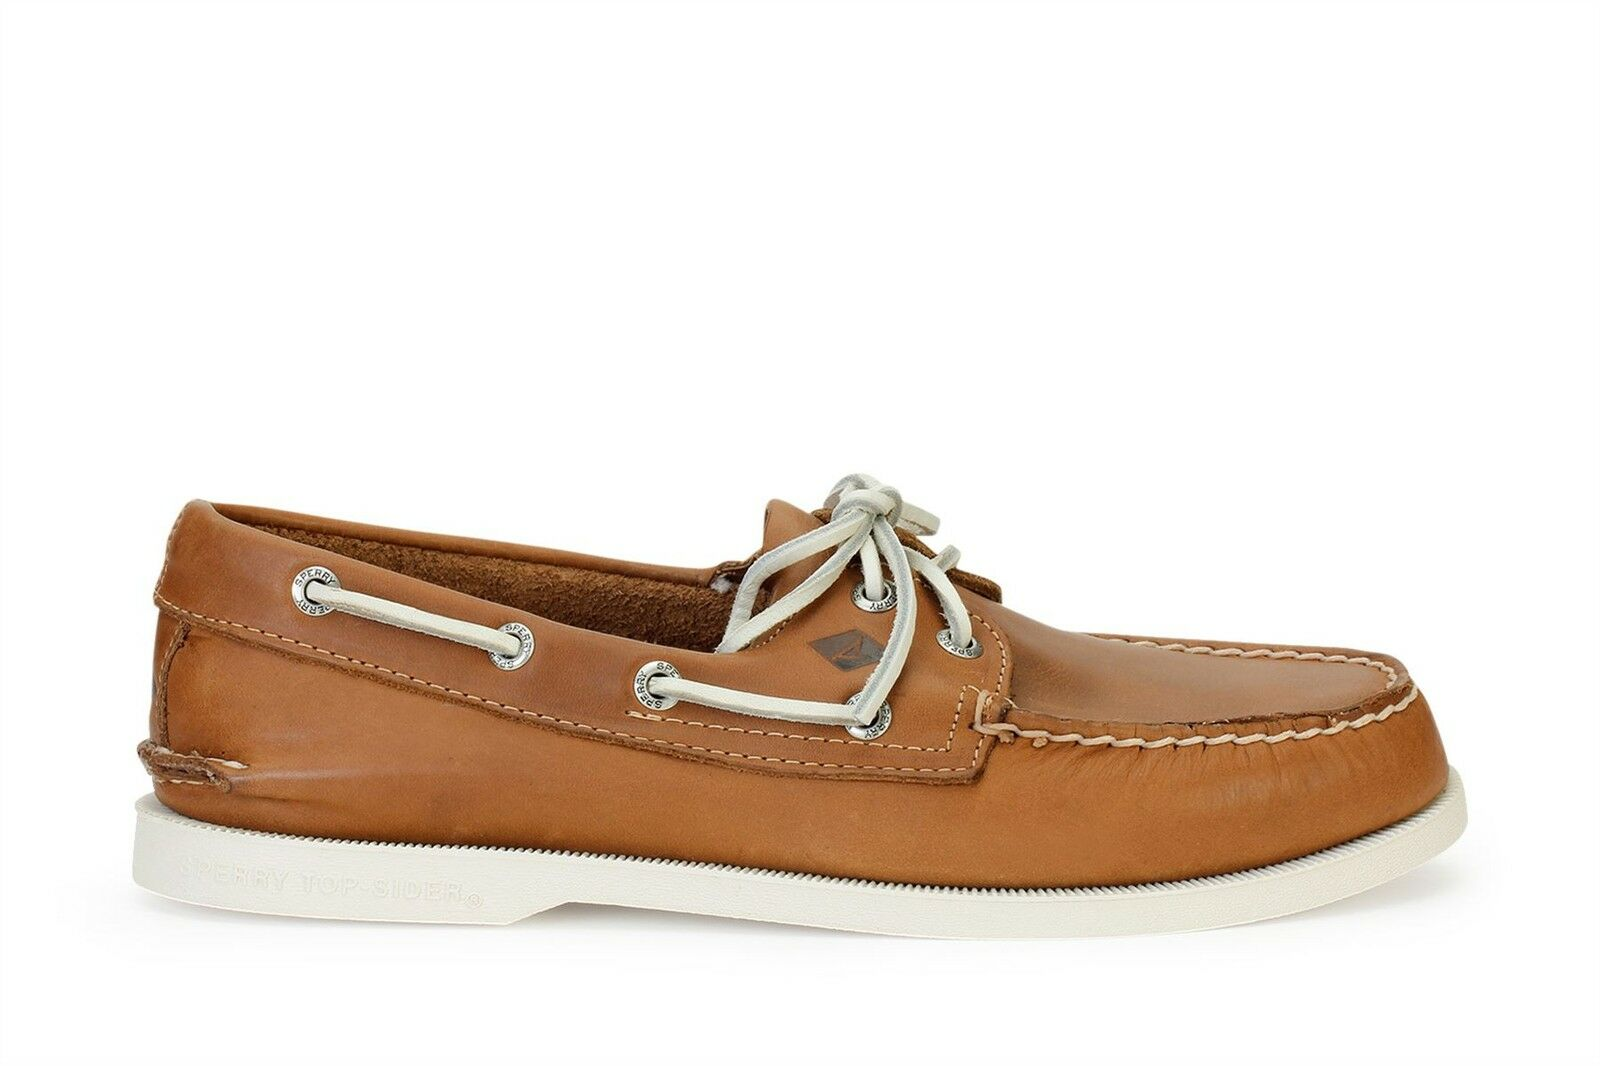 Sperry Top Sider Mens Boat shoes A O 2-Eye Sarape Tan